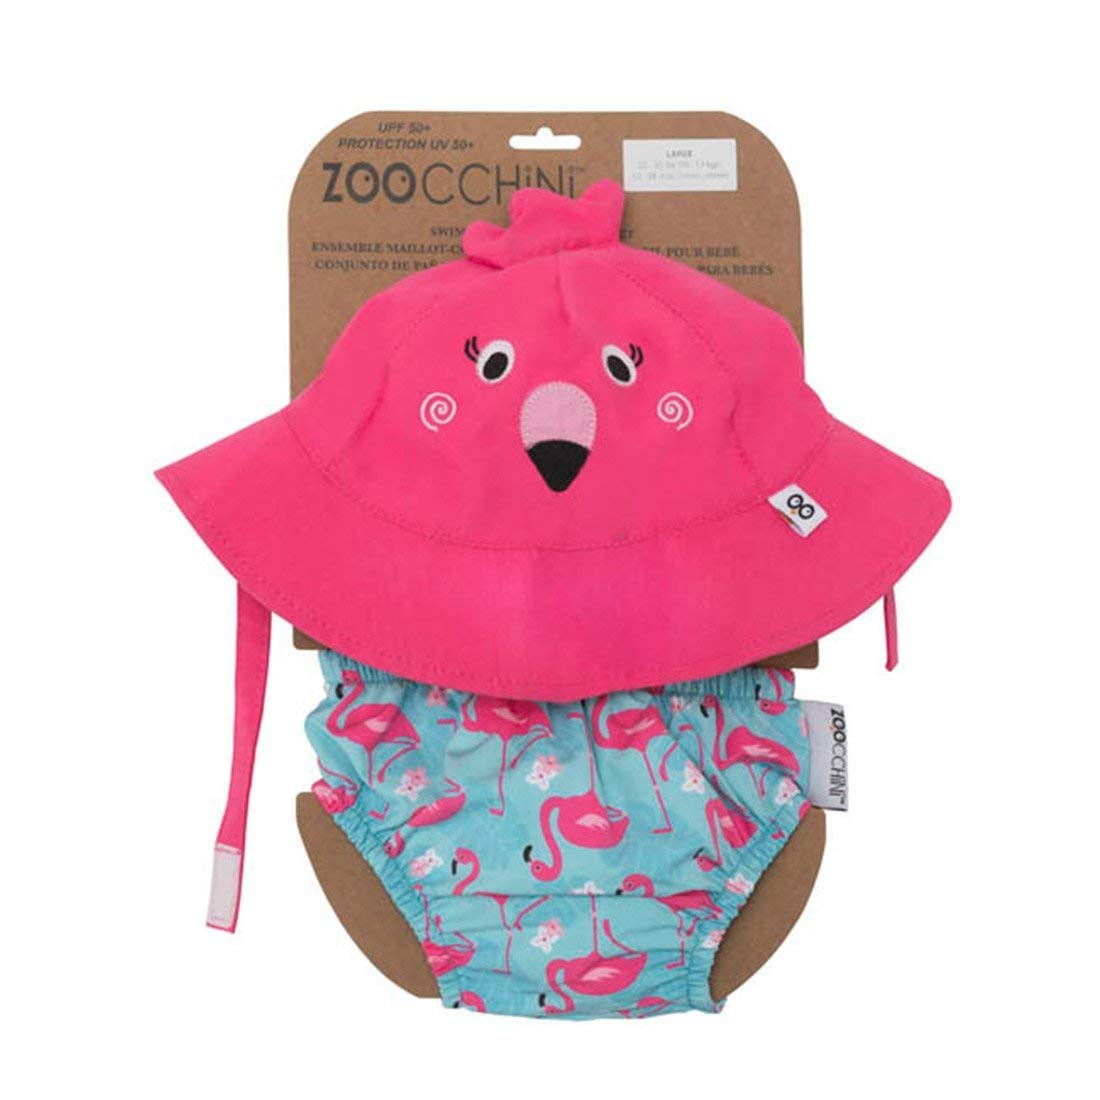 ZOOCCHINI UPF 50+ Baby Sun Hat & Swim Diaper Set - Franny The Flamingo, 6-12M, Polyester, Chlorine & Water Resistant, BPA-Free by ZOOCCHINI